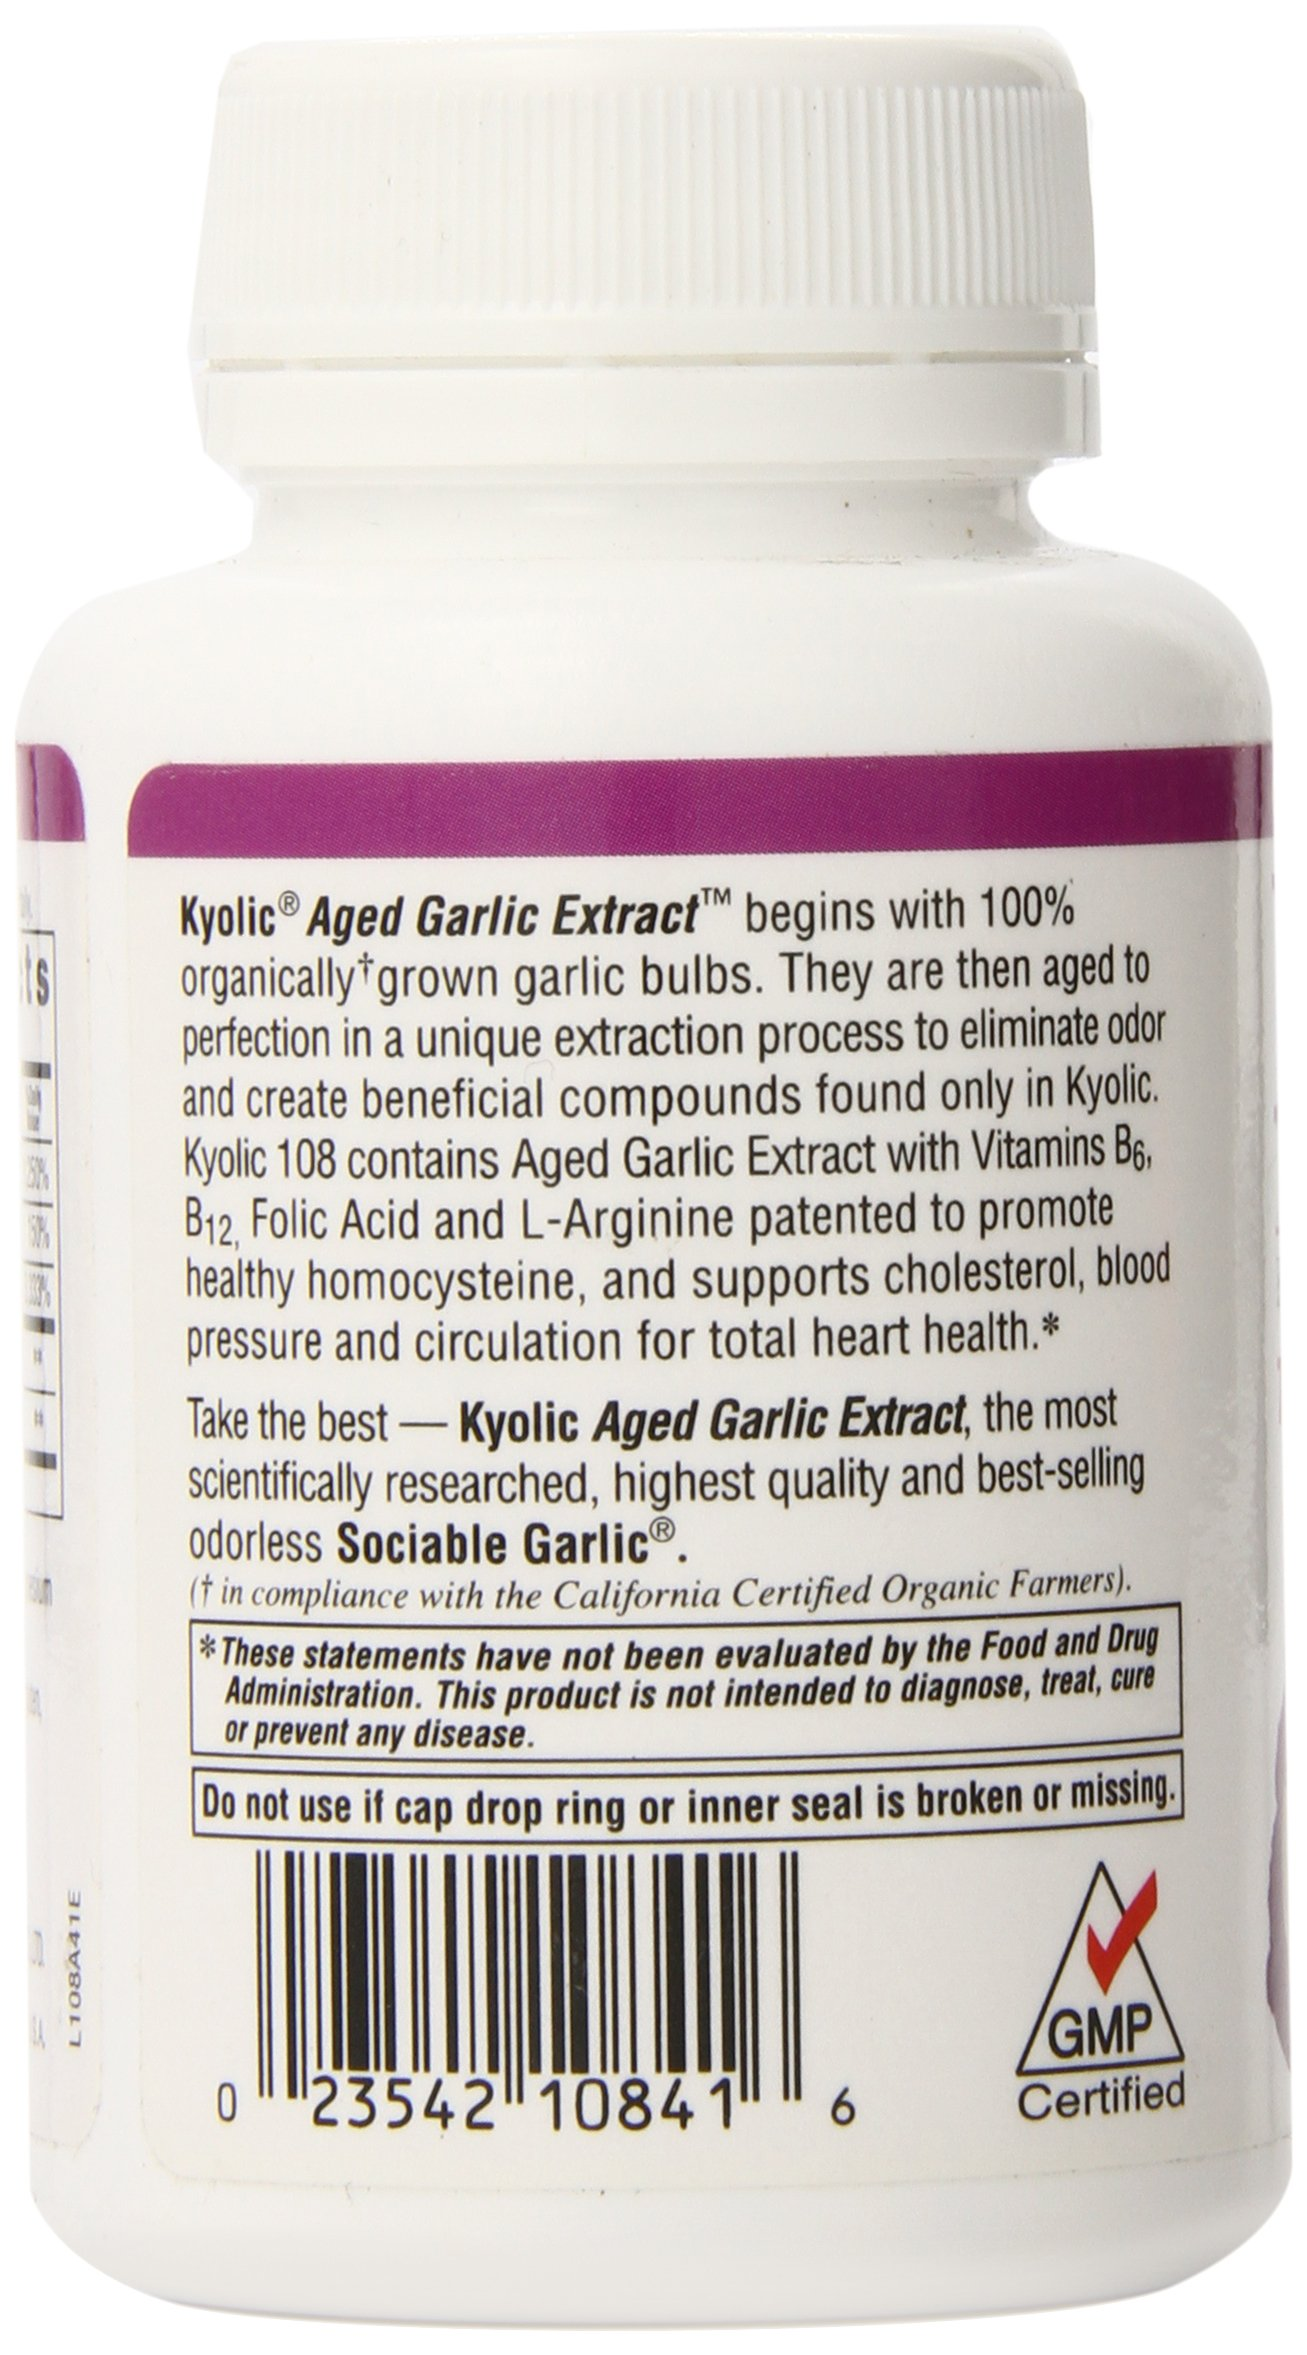 Kyolic Aged Garlic Extract Formula 108 Total Heart Health (100 Capsules) Heart Healthy Odorless Organic Garlic Supplement, Soy- Gluten-Free, Gentle on the Gut Garlic Pills